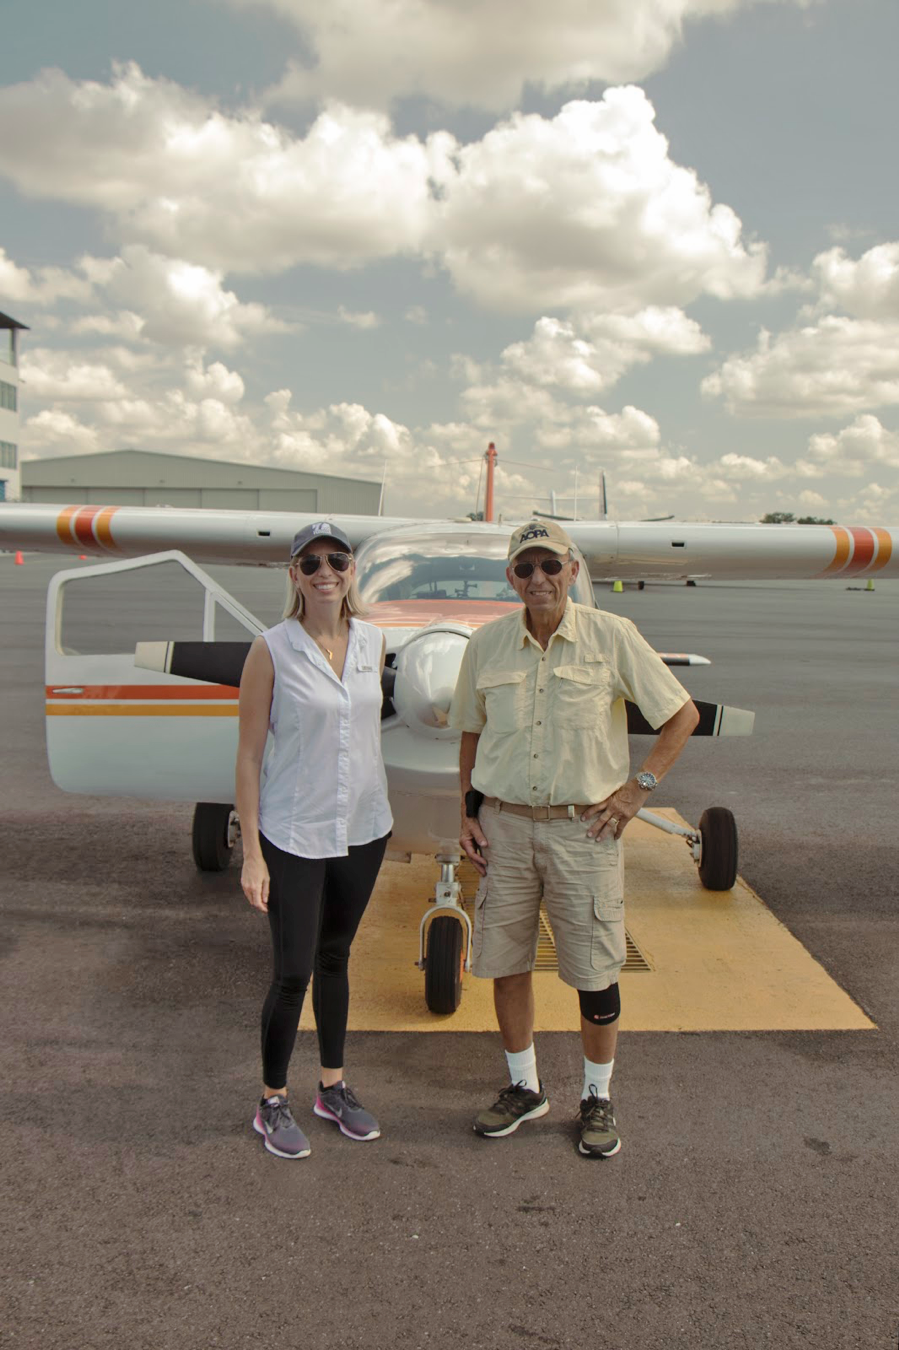 Traci Deen, Conservation Florida's executive director standing with pilot, Charlie Martinez on flight day.